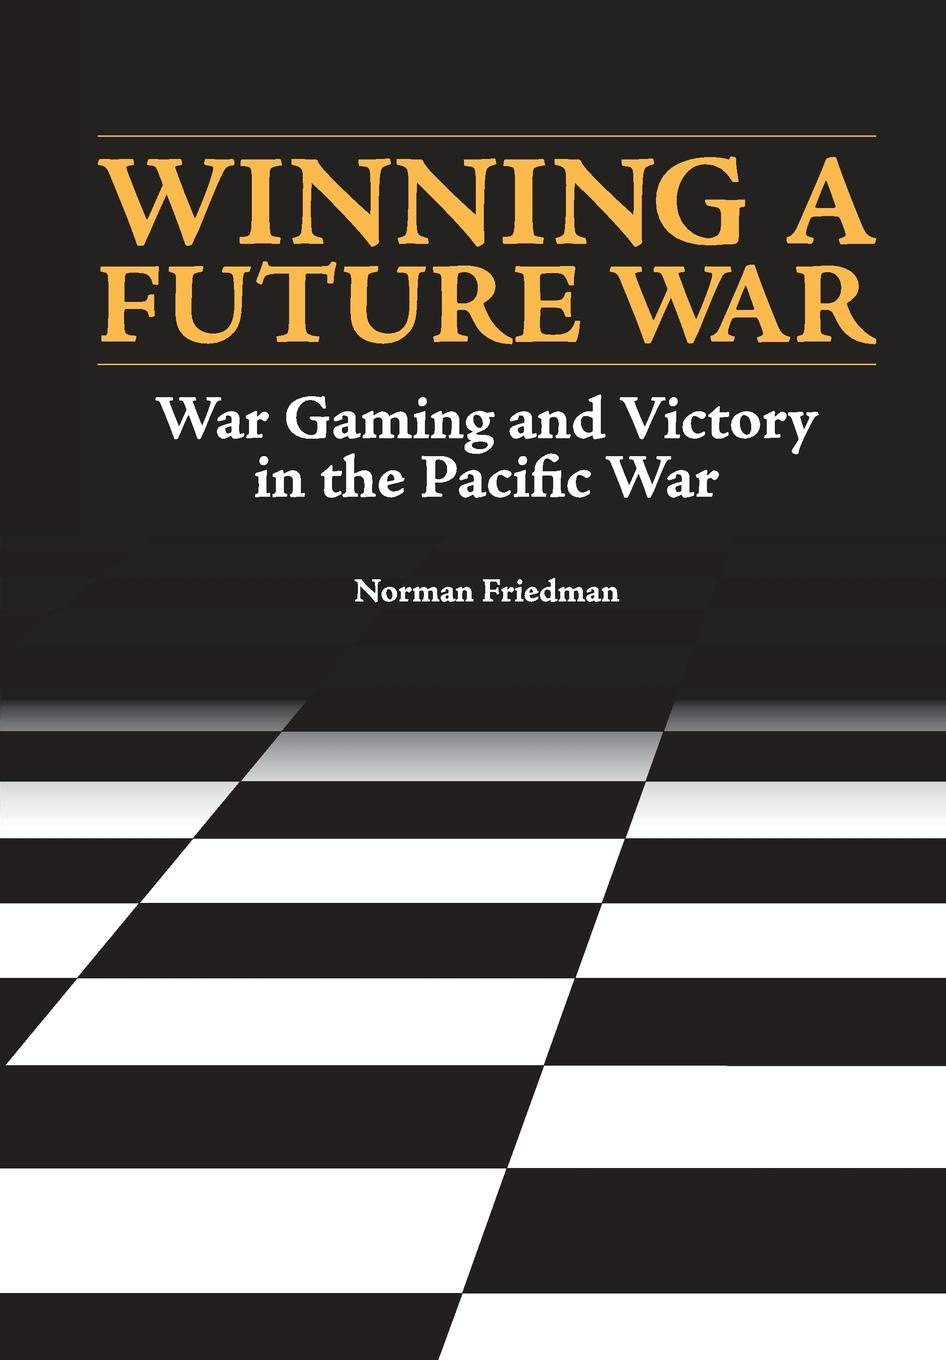 цена на Norman Friedman, Naval History and Heritage Command, U.S. Department of the Navy Winning a Future War. War Gaming and Victory in the Pacific